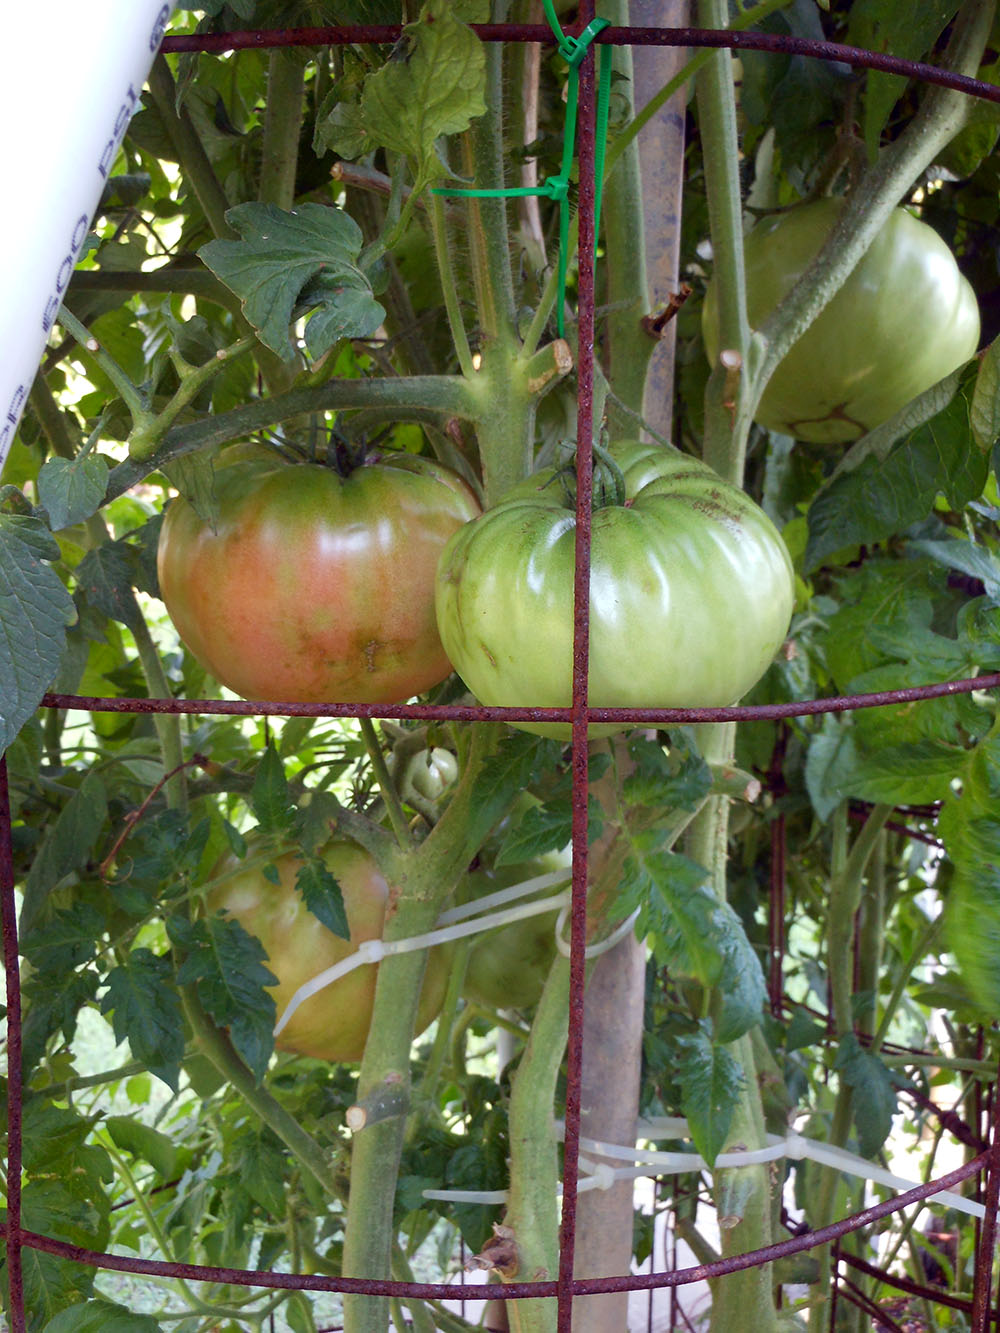 07-03-2015 Garden No 2 Giant Better Boy Tomatos 01